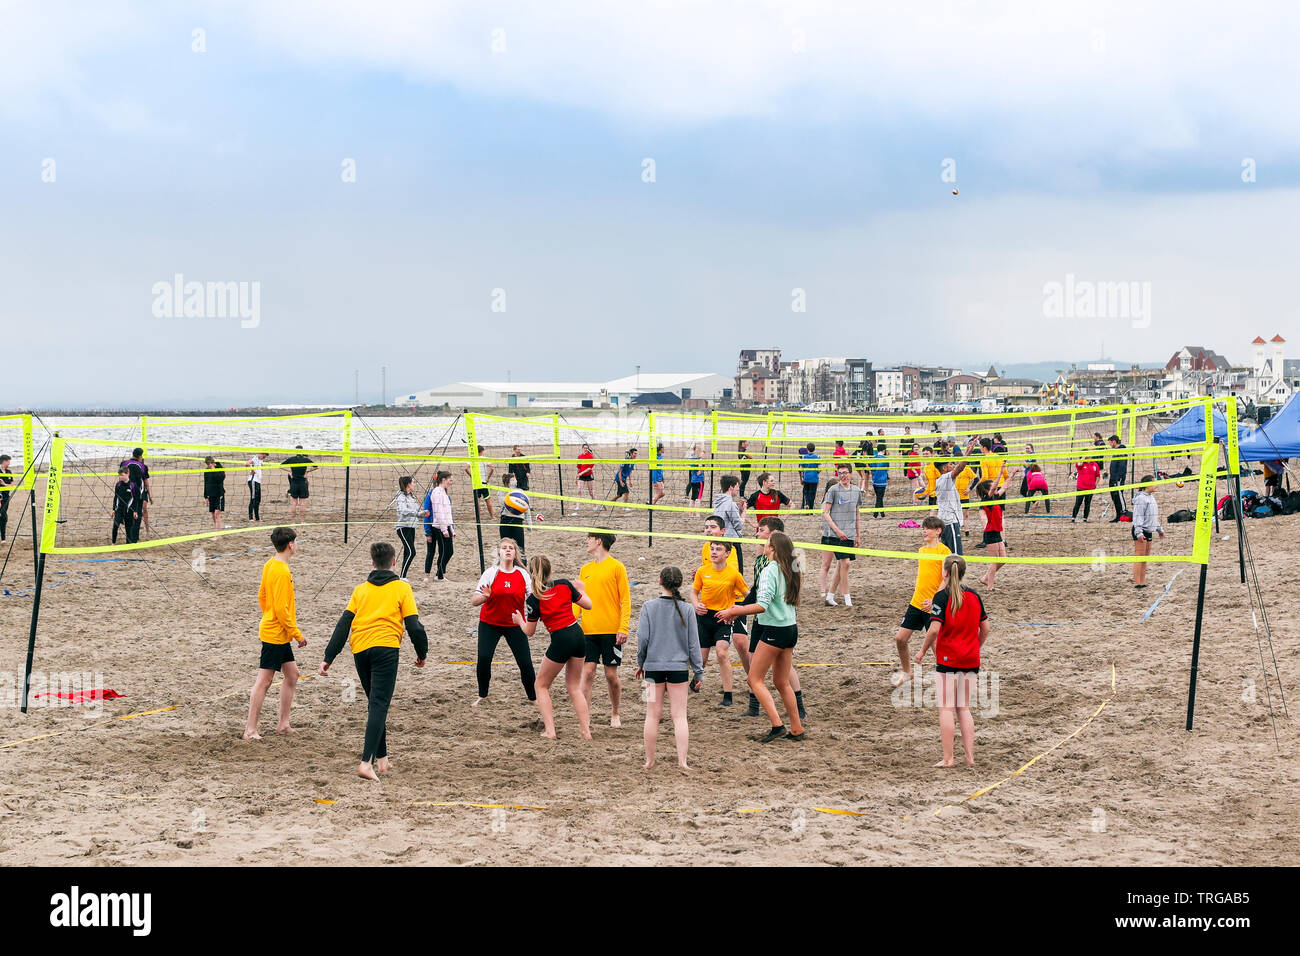 Ayr, UK, Scottish Volleyball Association organised the first school's beach volleyball competition held in Scotland, where 180 secondary school children, aged over 13 years, forming 40 teams from across the West of Scotland were invited to take part. The competition, won by  St Matthews Academy, Saltcoats (wearing yellow) was overseen by the members Scottish Volleyball Association who were hoping to identify potential future international team players and put them on a pathway to success. Credit: Findlay/Alamy Live News Stock Photo